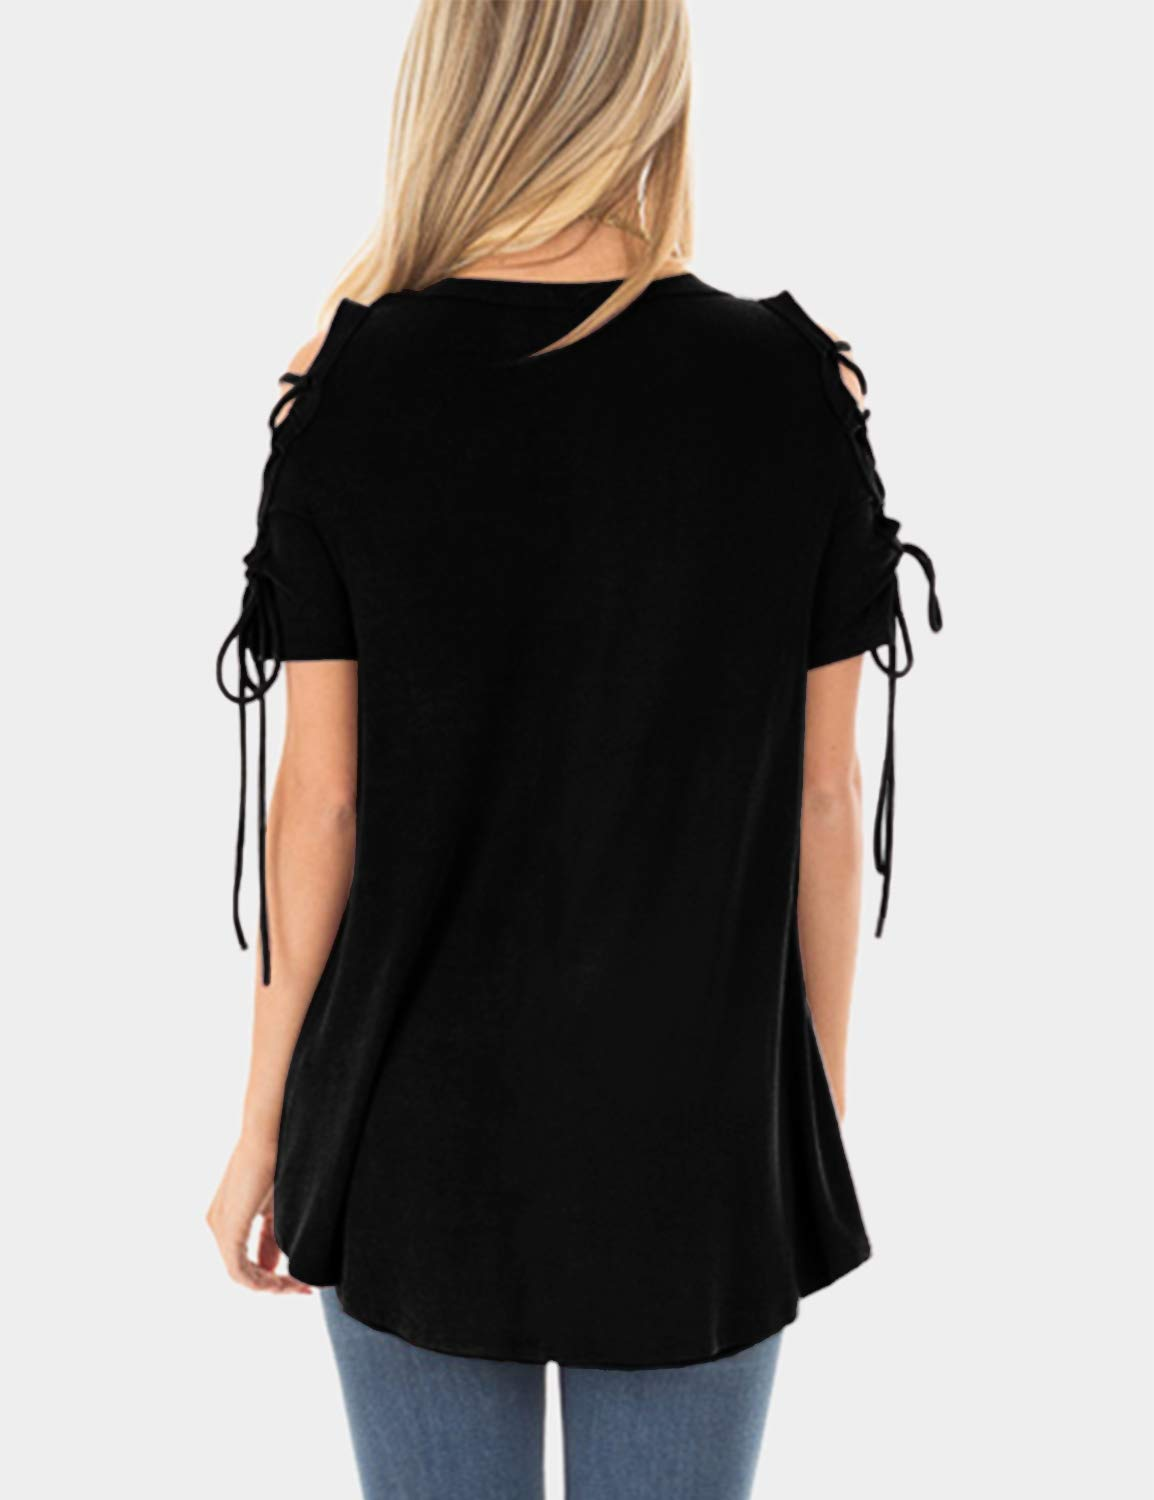 Blooming Jelly Womens Summer Cold Shoulder Tops Cut Out Square Collar Casual Tunic T Shirt for Ladies Black,S